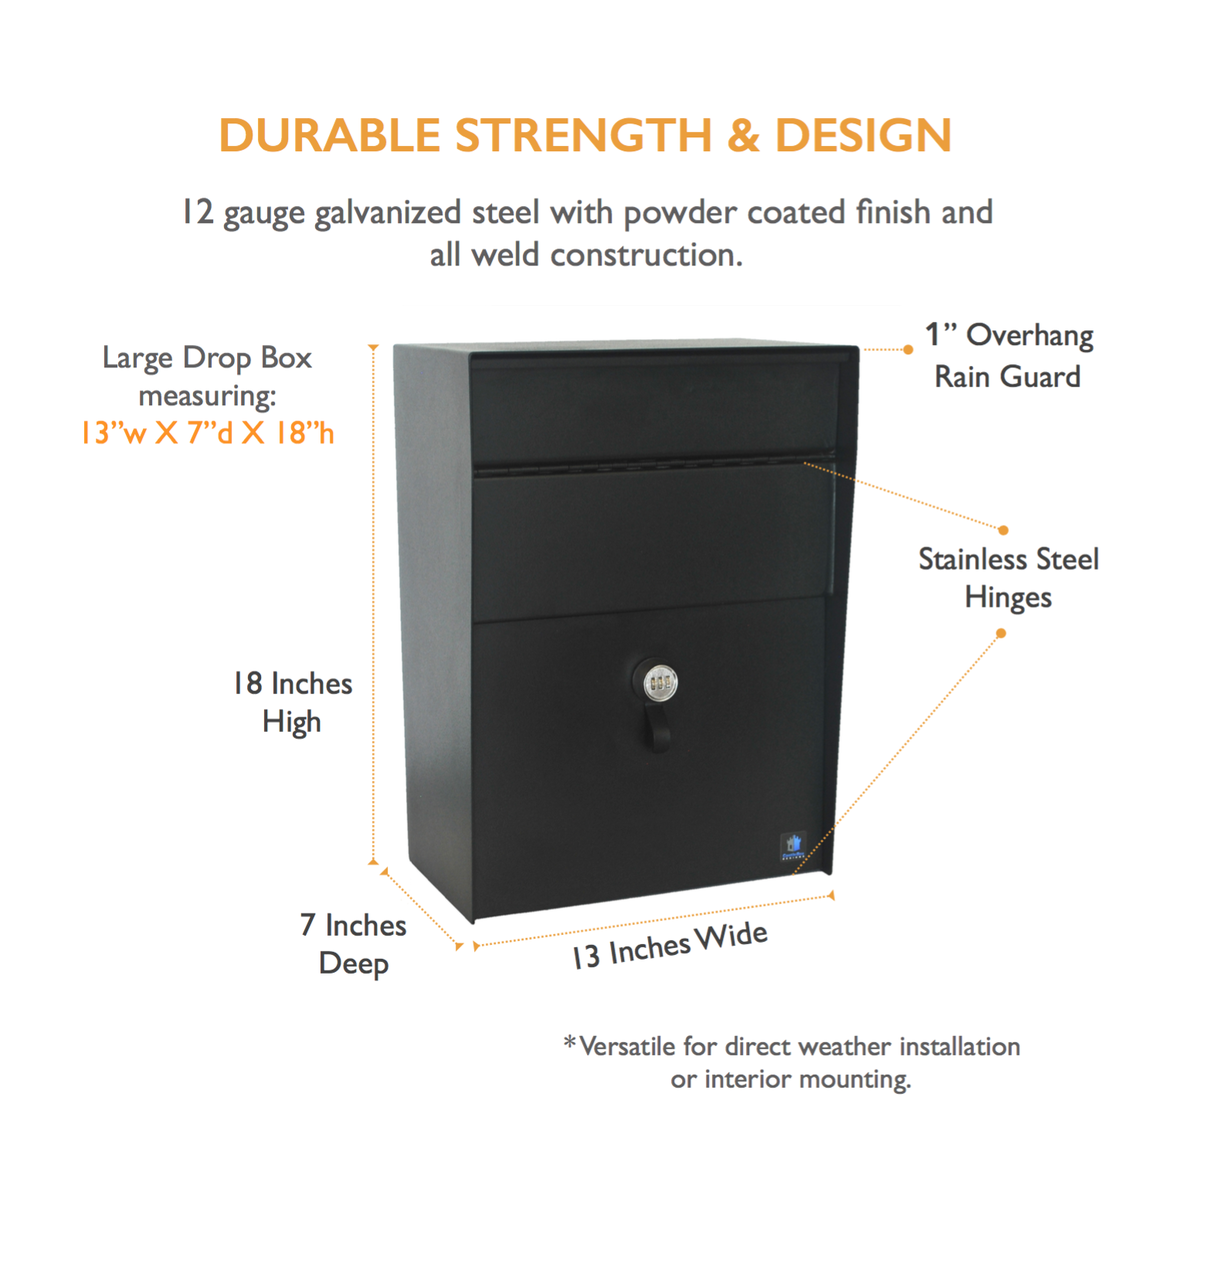 Drop Box Durable Strength & Design